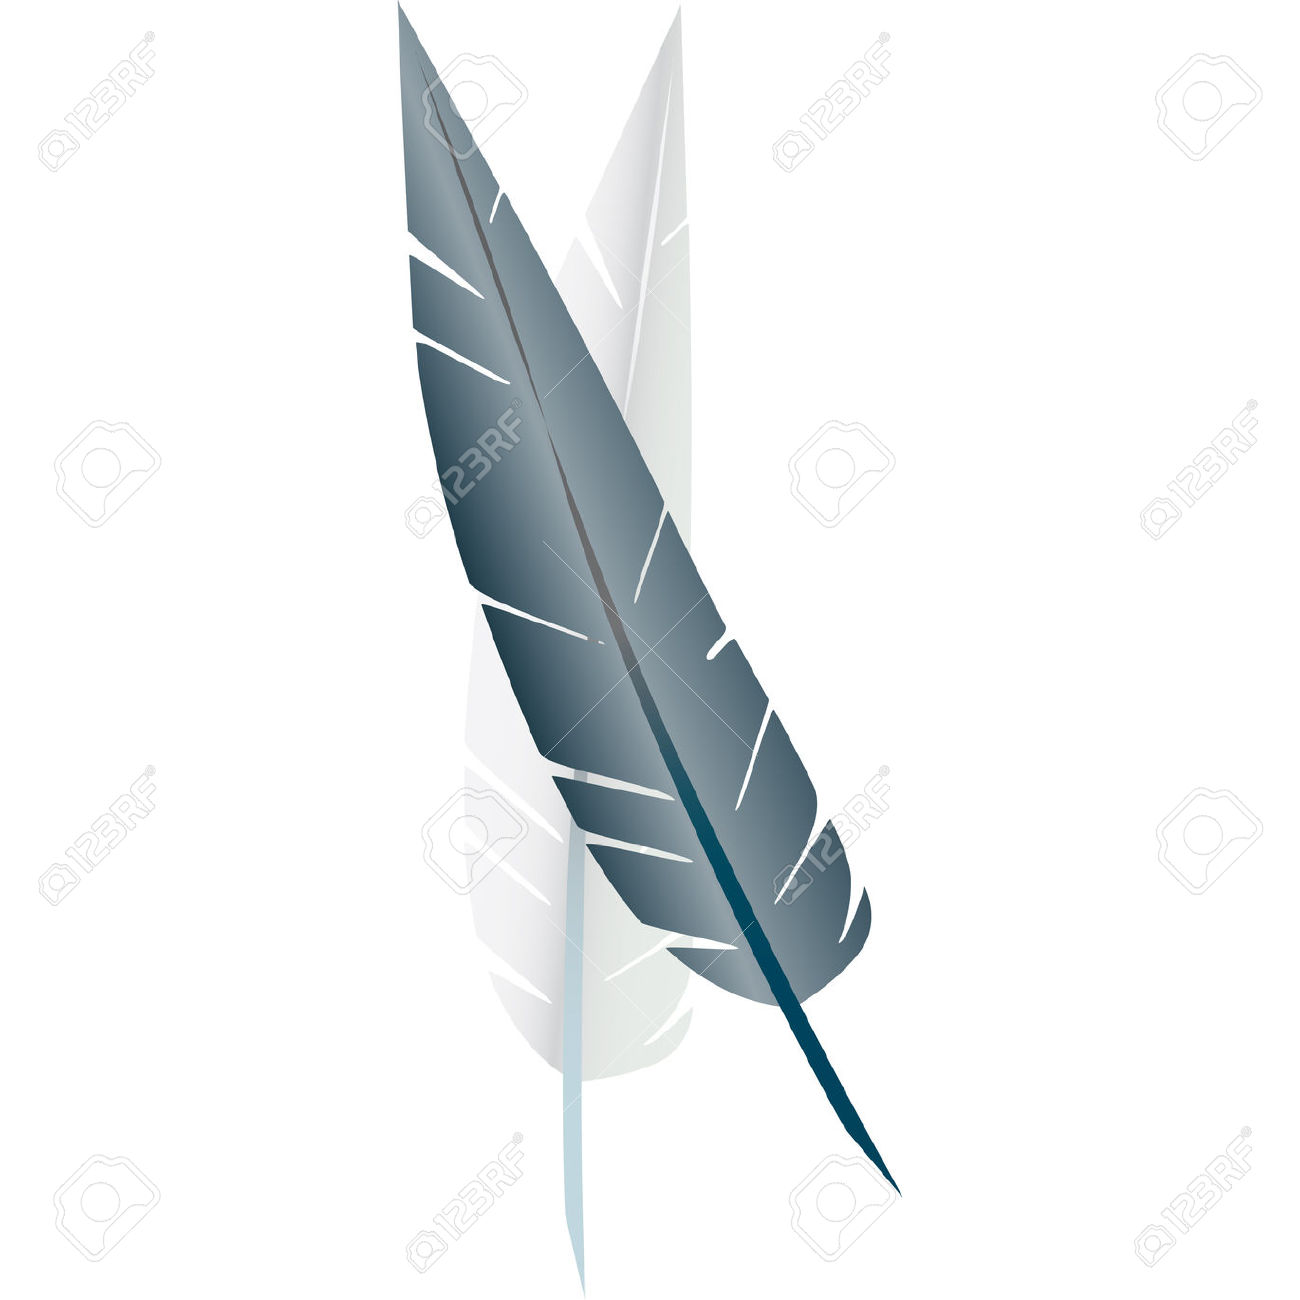 White Goose Feathers Used To Stuff Pillows Royalty Free Cliparts.